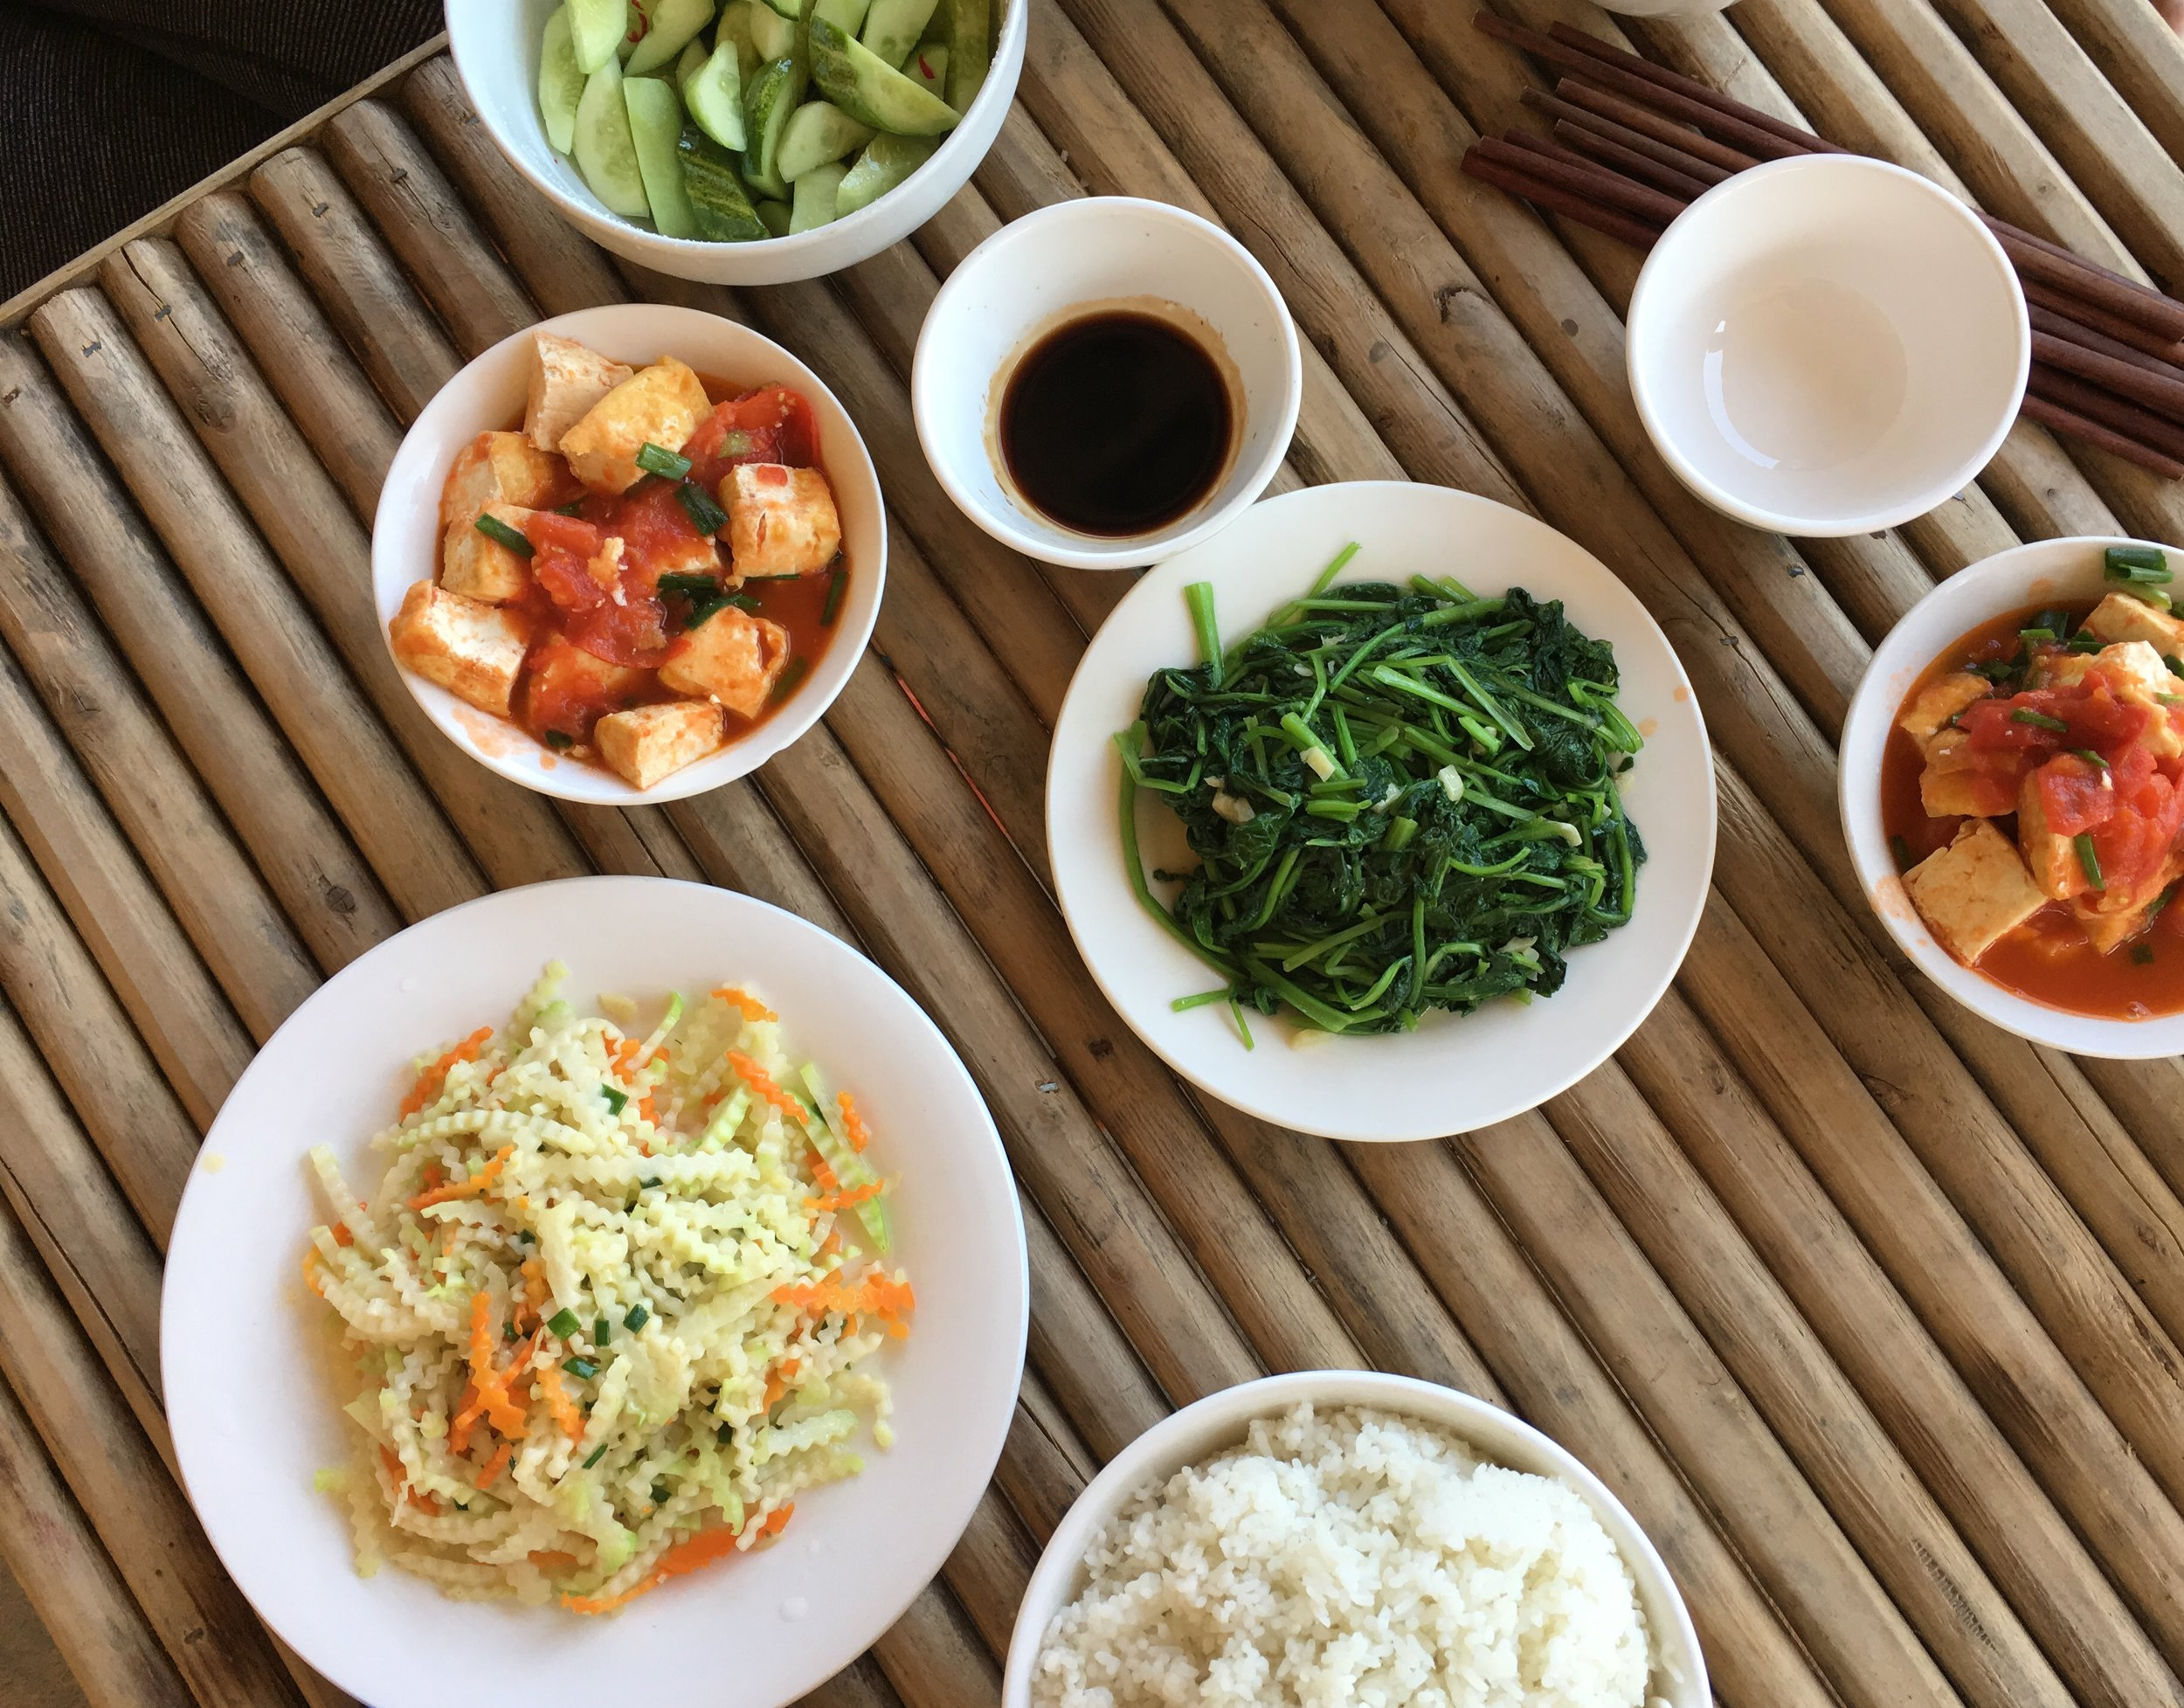 Home cooked plant based meal in a Hmong Village in Sapa, Vietnam